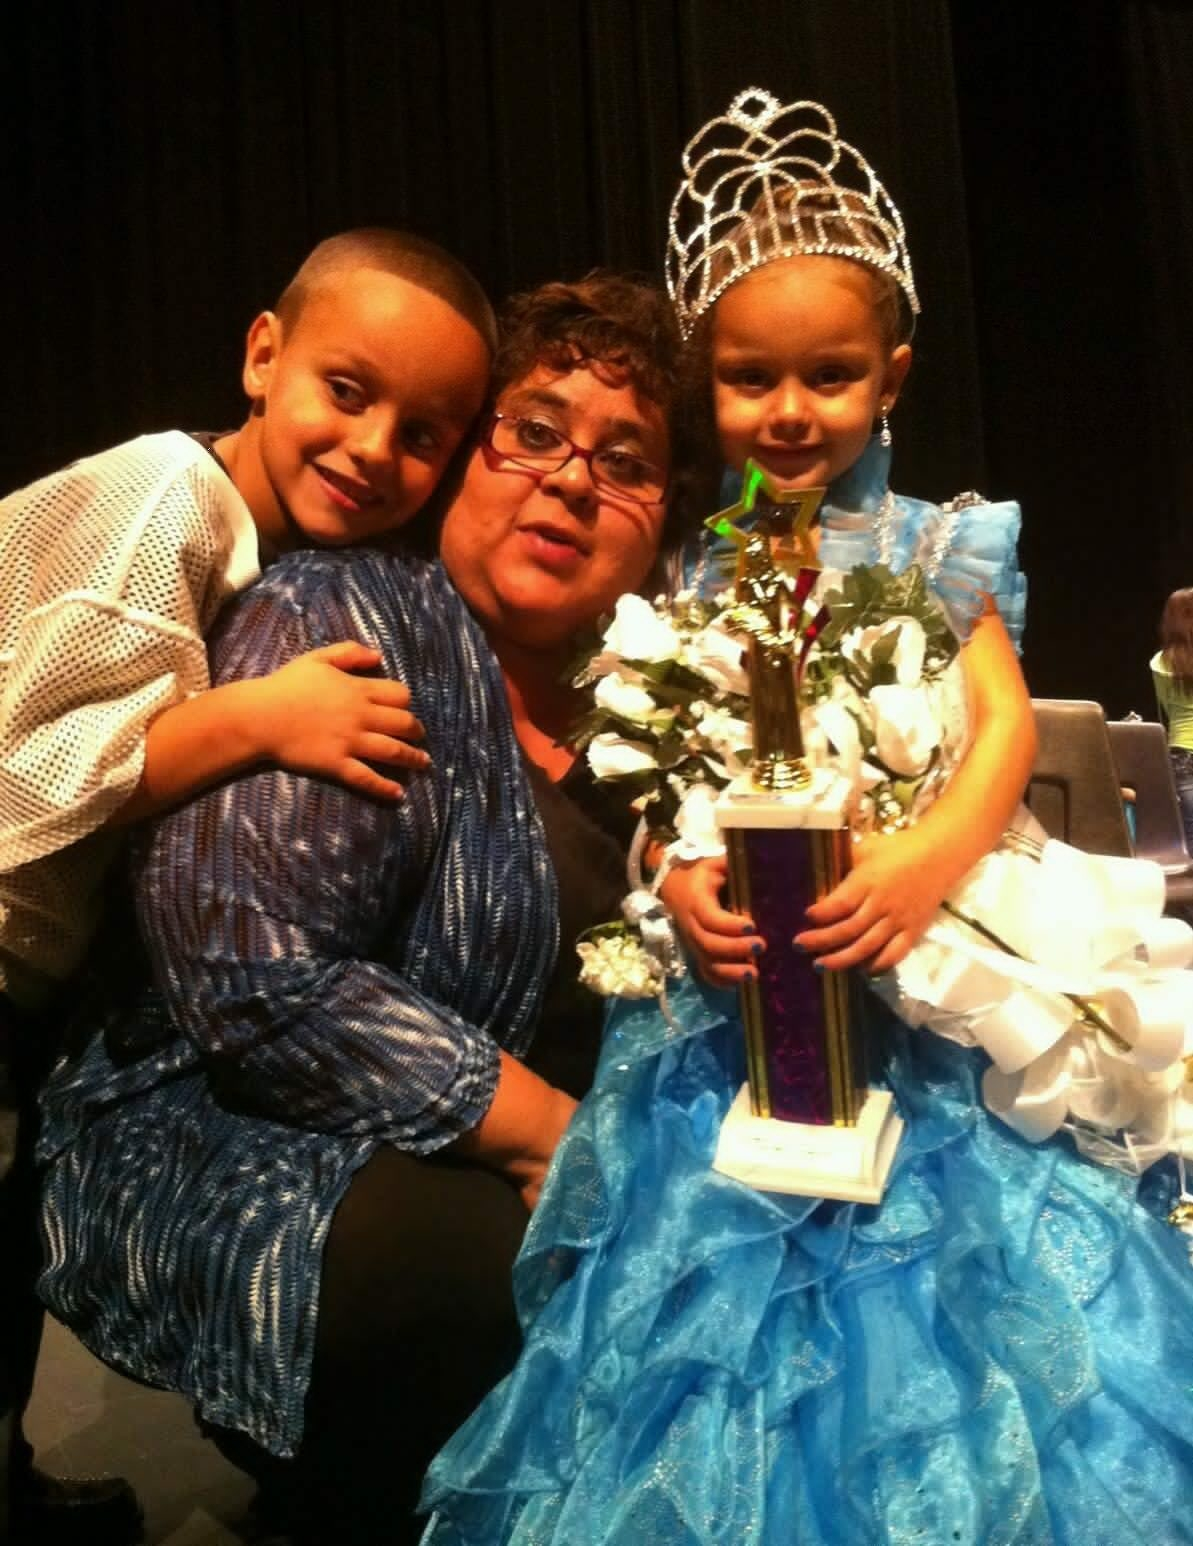 This is Adrienne Castillo and she won overall Alma Little League Homecoming Princess of 2013